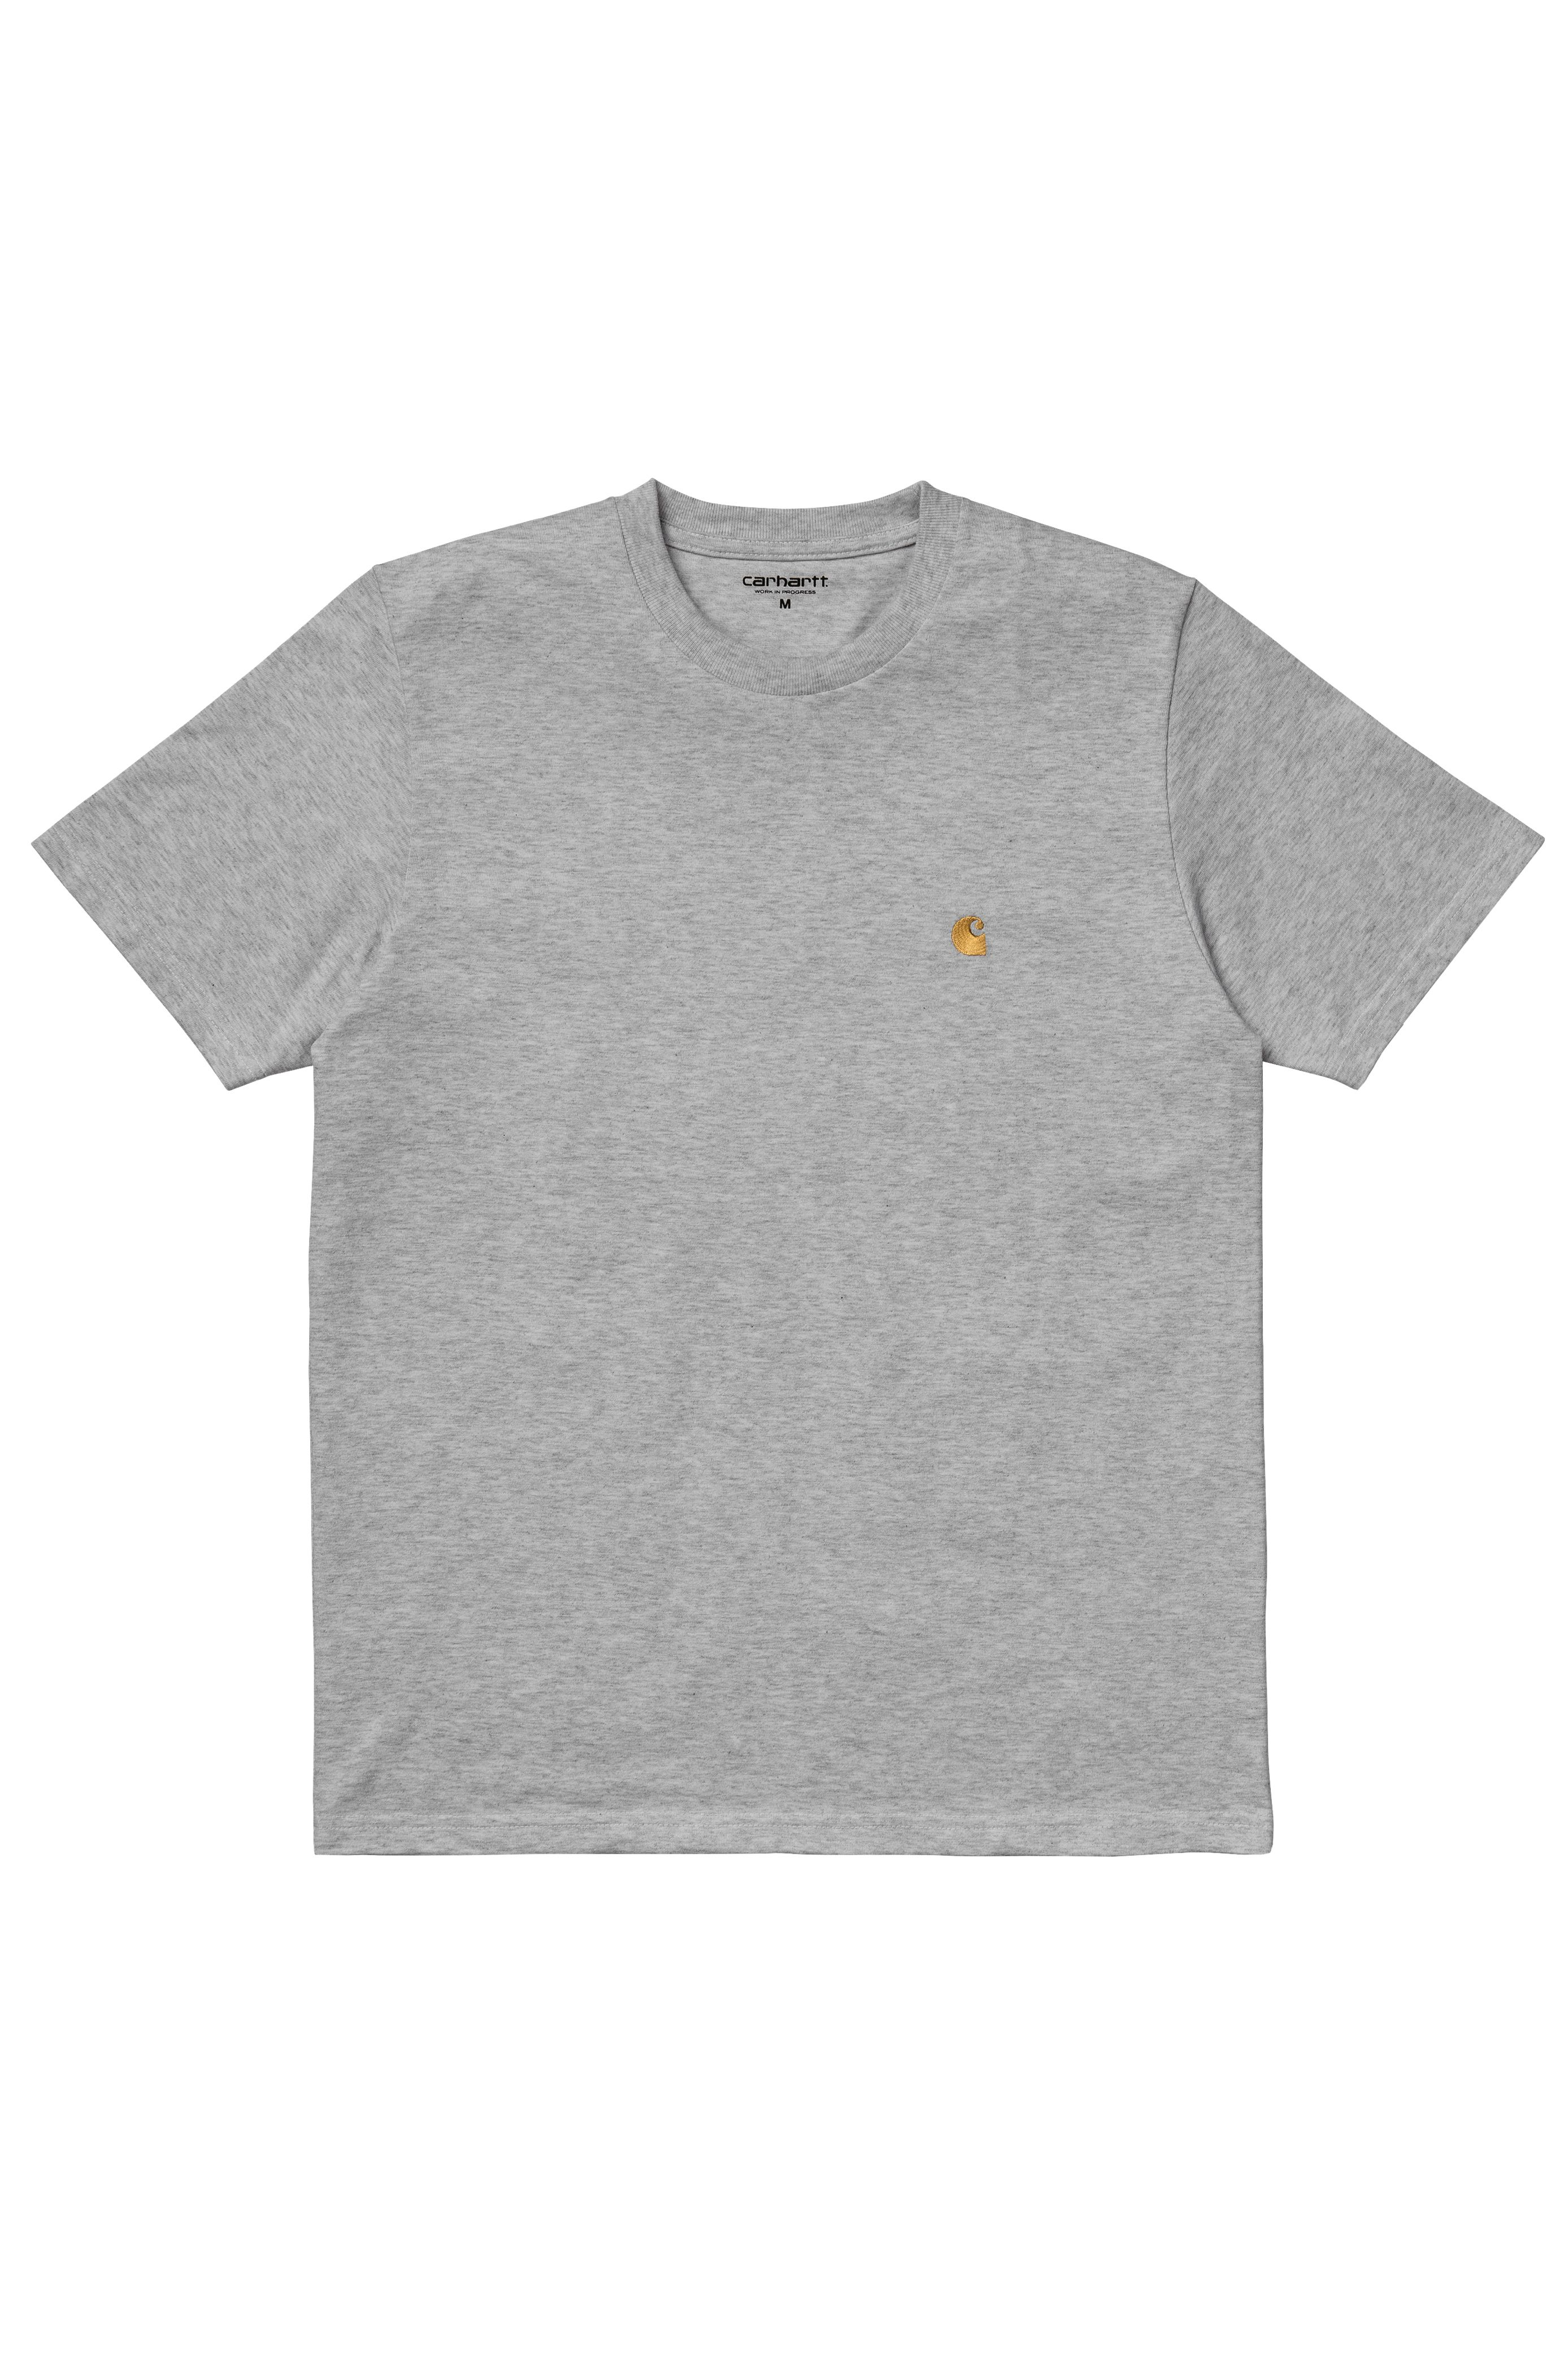 T-Shirt Carhartt WIP S/S CHASE T-SHIRT Grey Heather/Gold